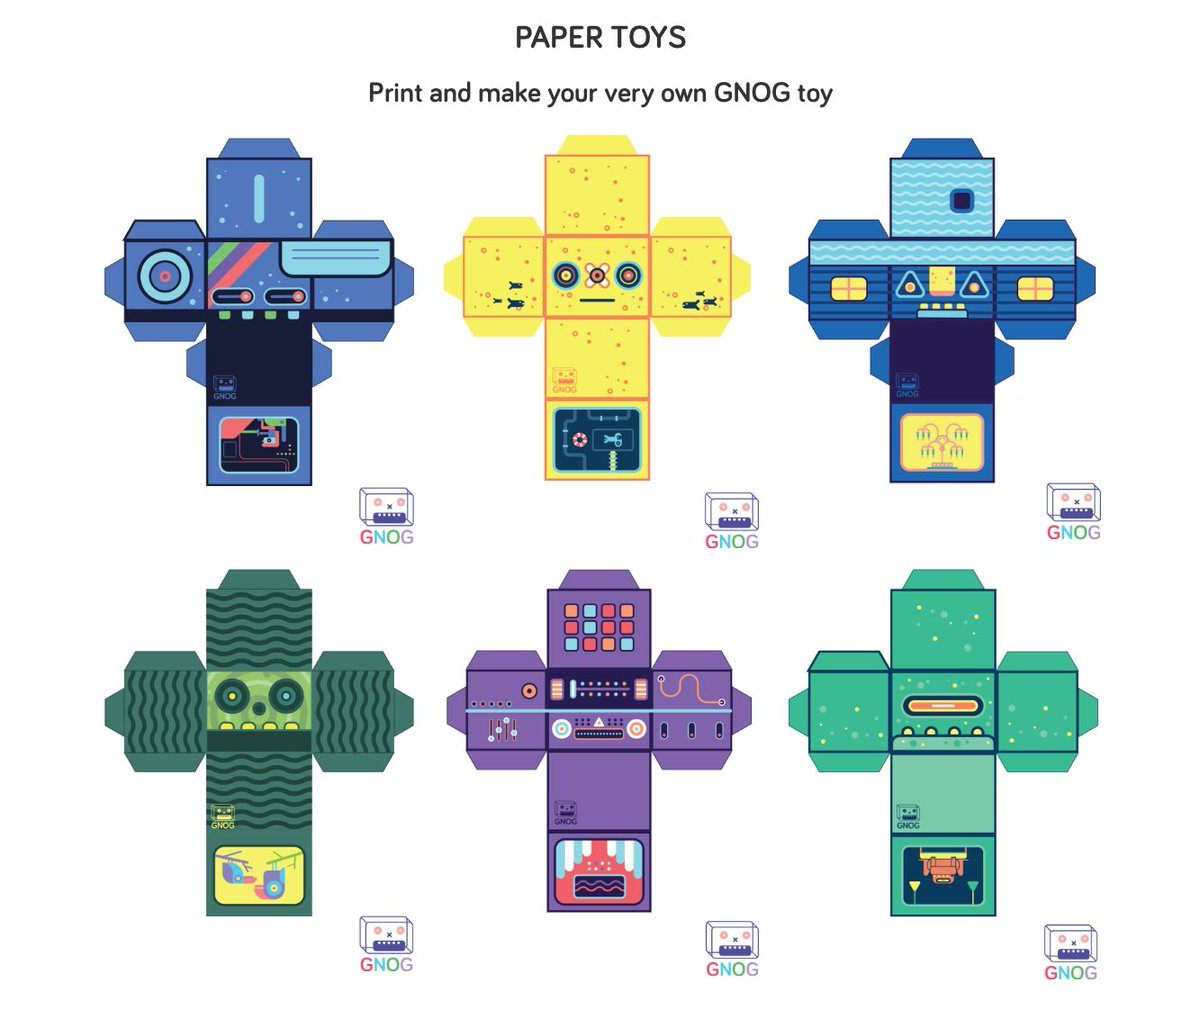 ko op on twitter download the gnog paper toy template cut fold